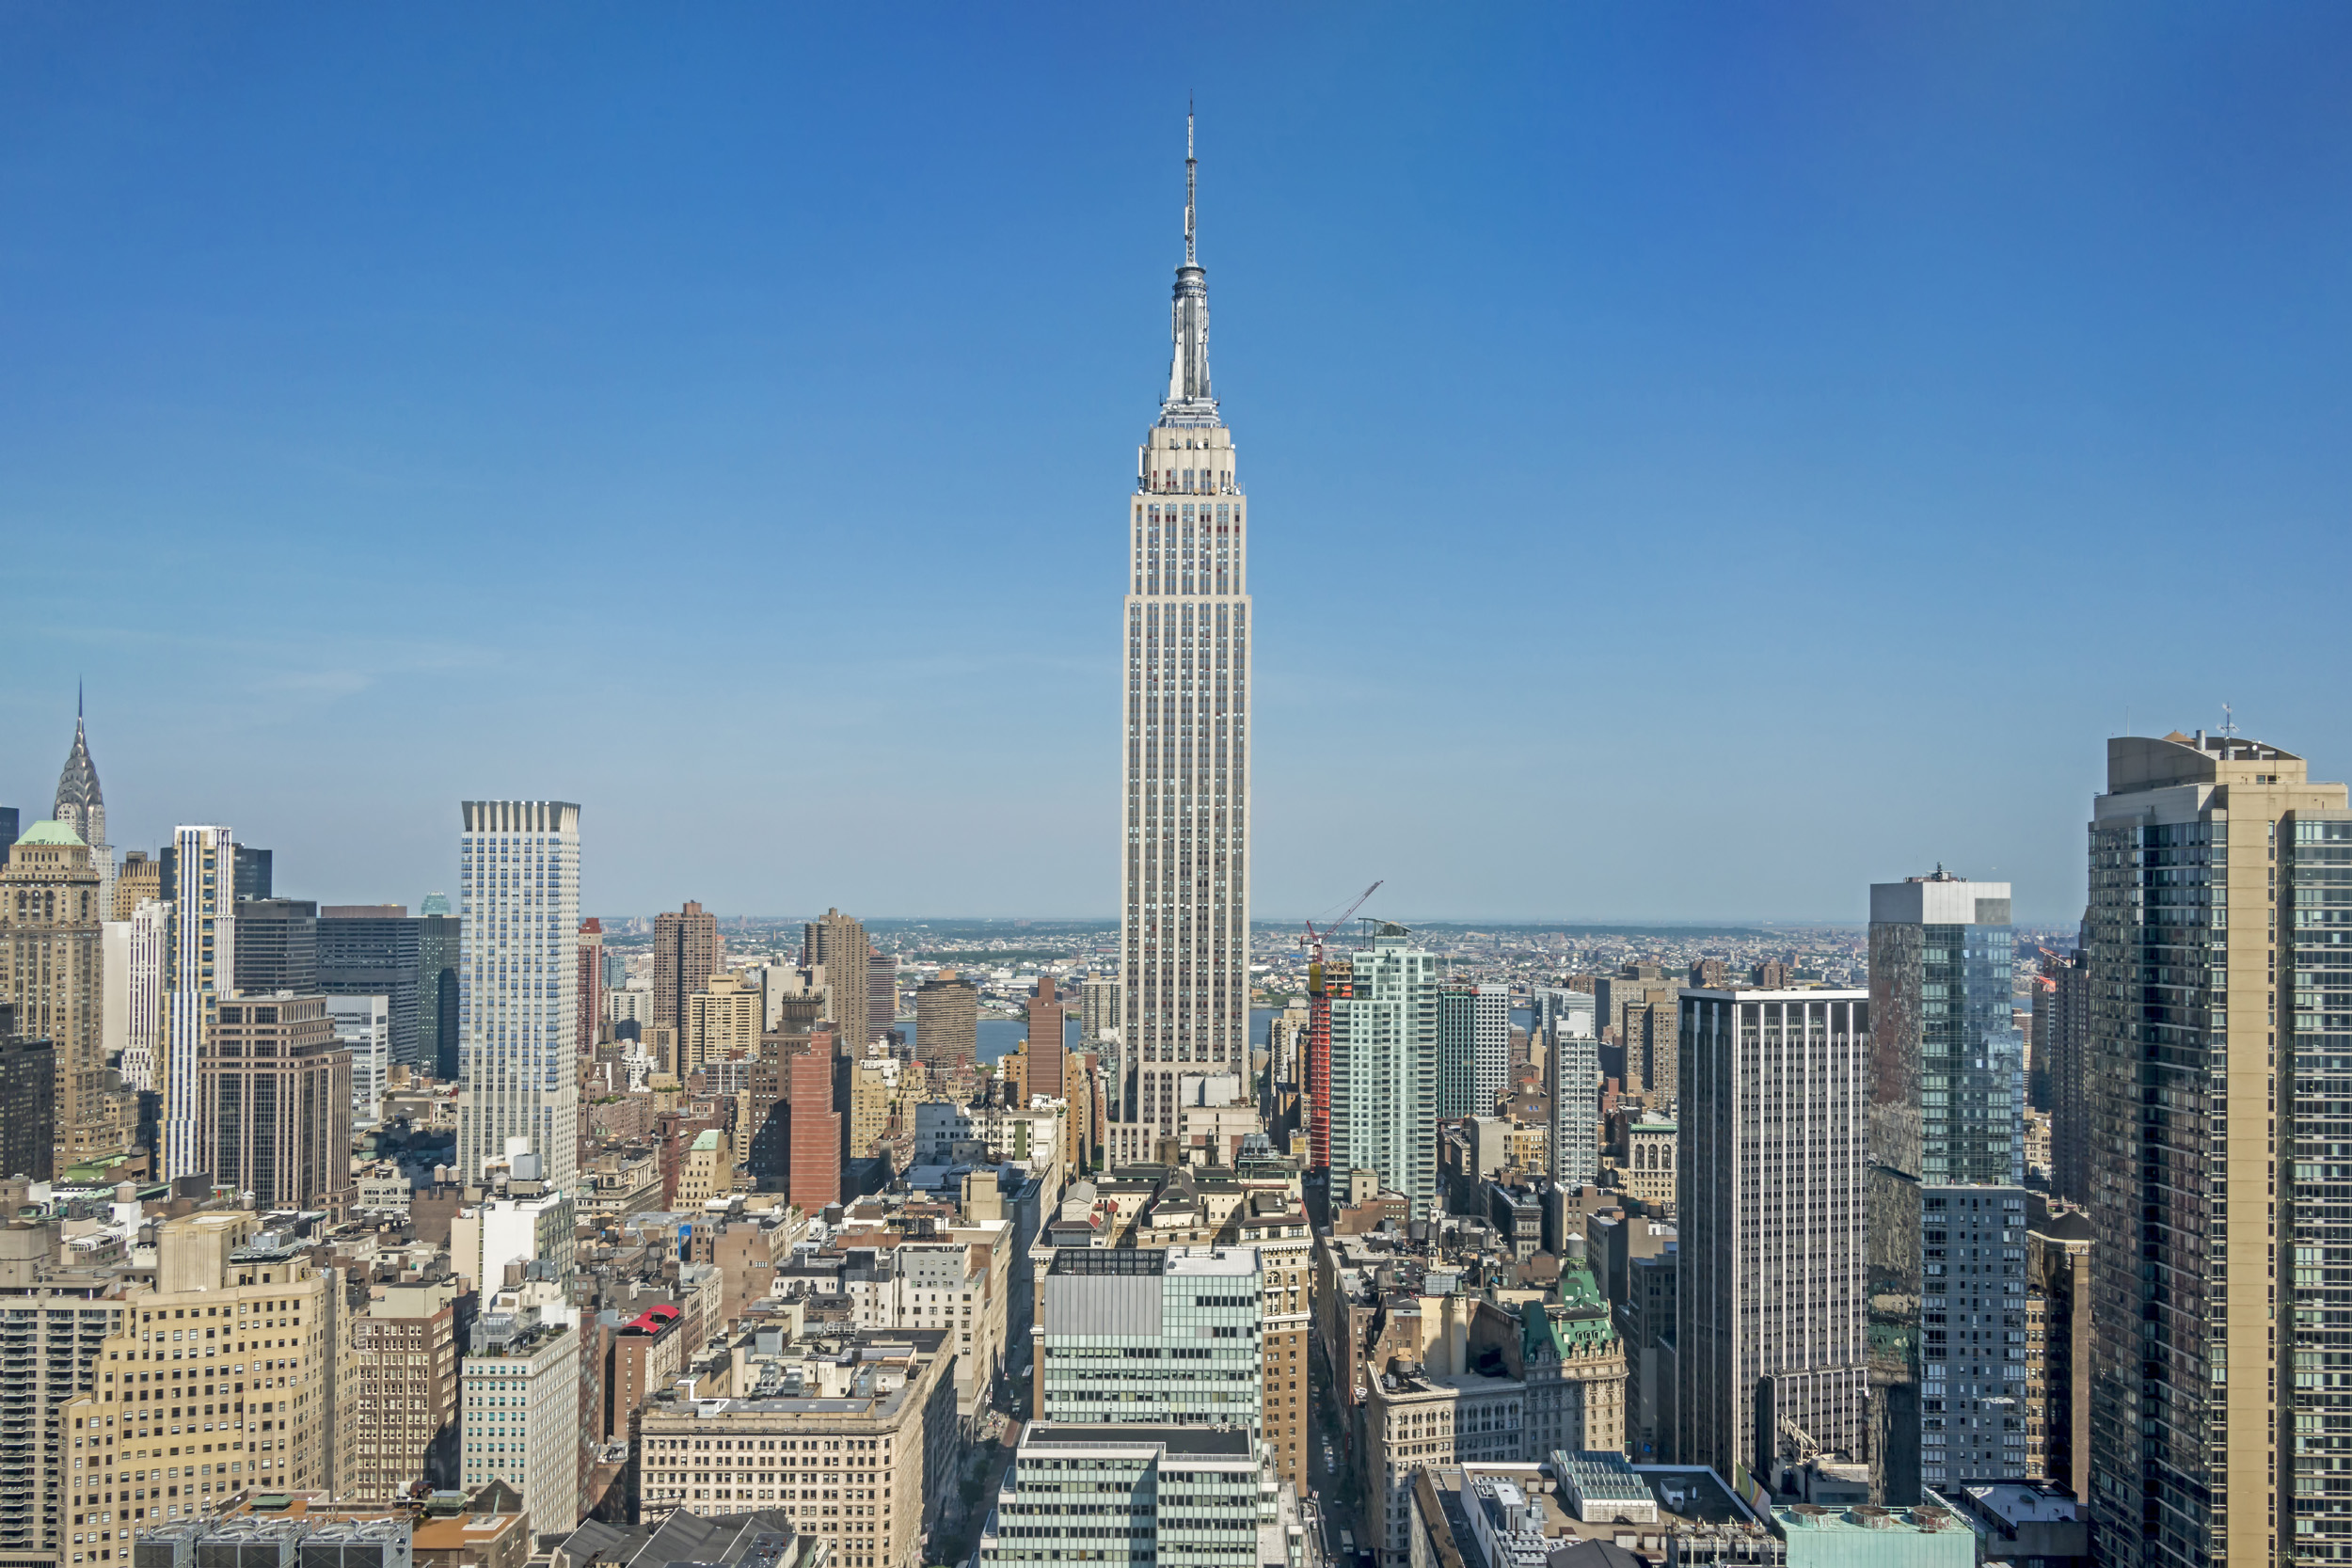 Empire State Building from 1 Penn Plaza